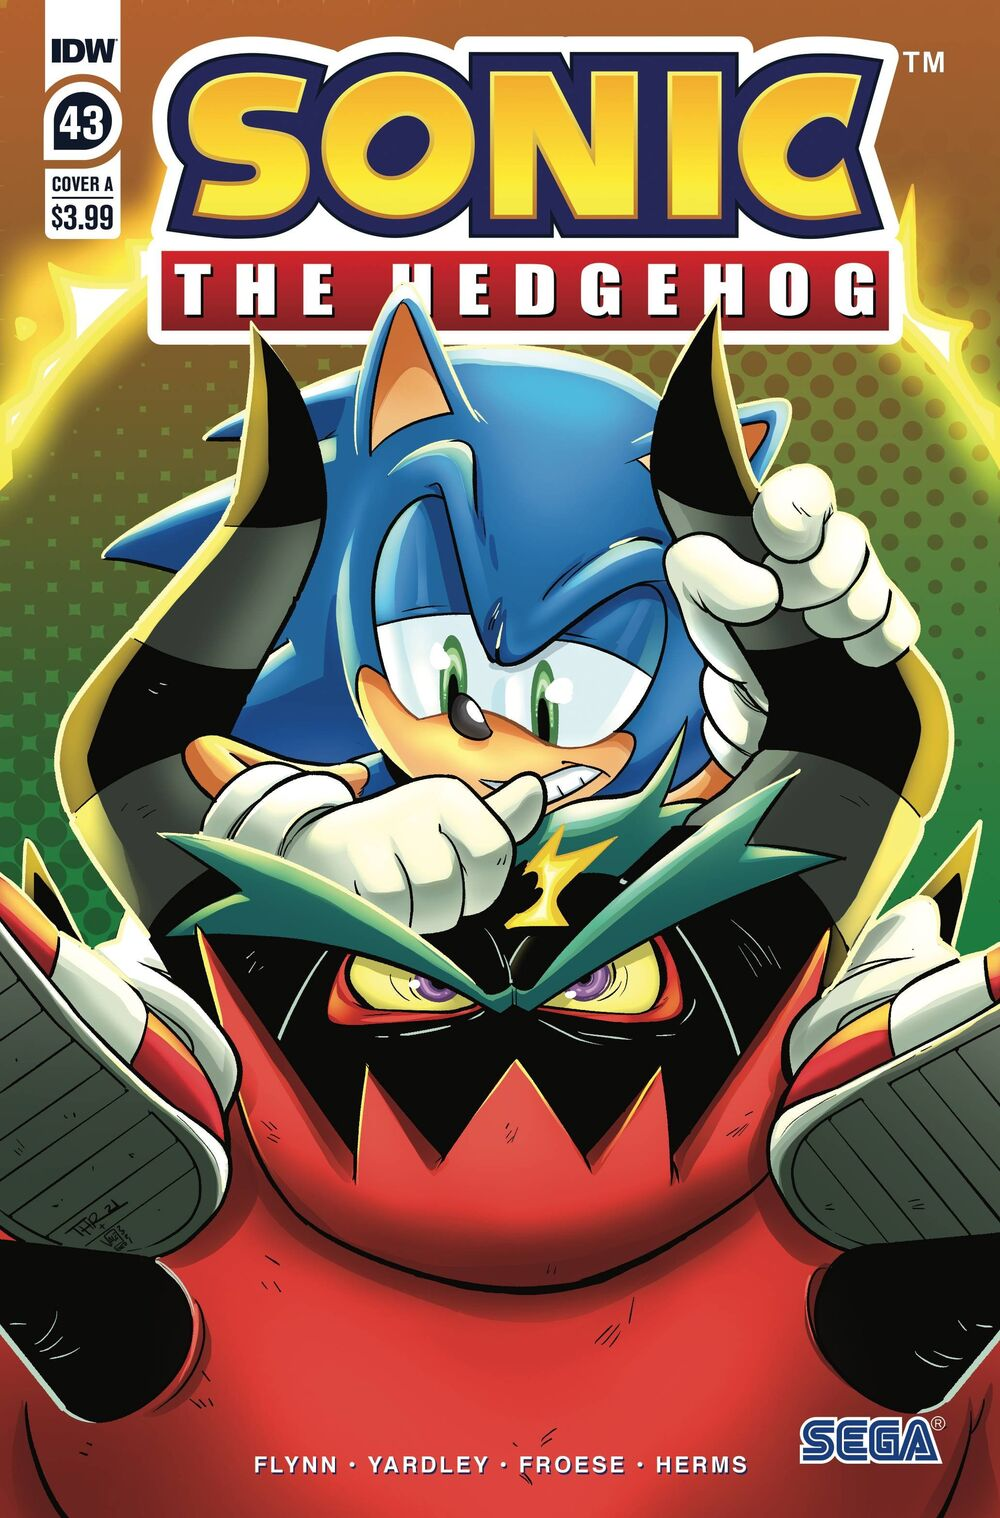 Sonic The Hedgehog #43 Cover A